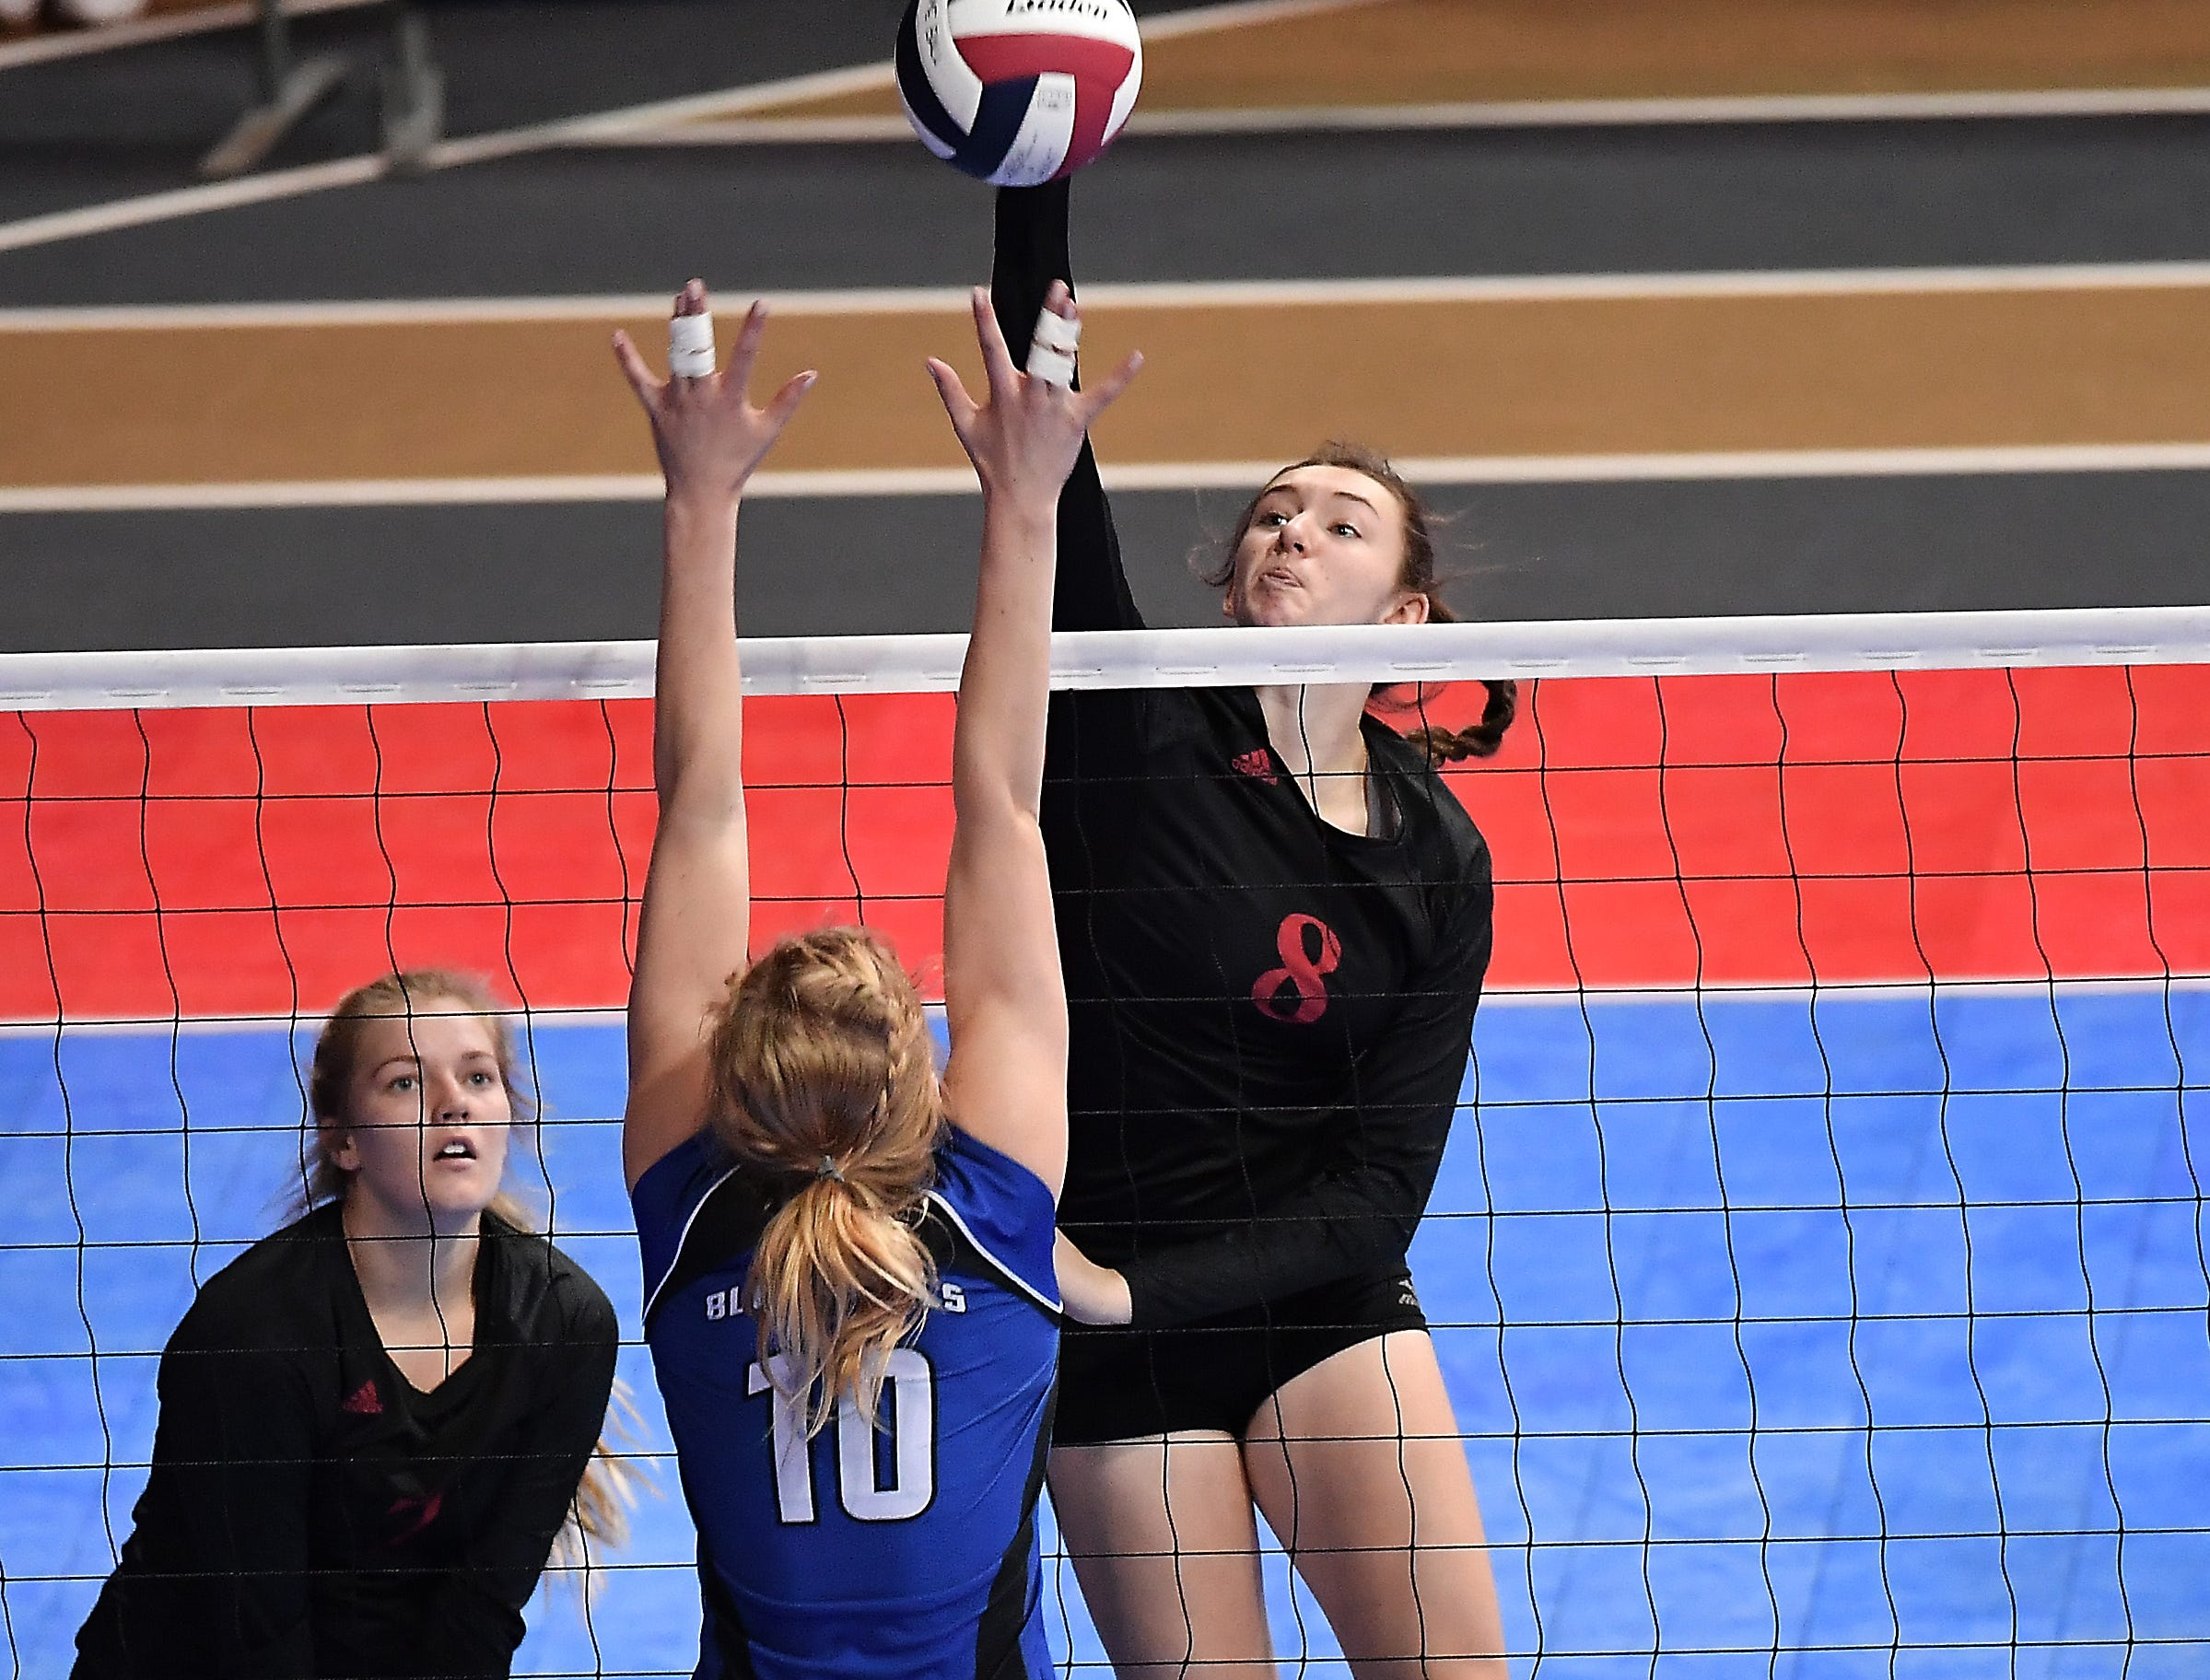 Karsen Murphy of Glendive gets the kill against Corvallis at the All-Class State Volleyball Tournament at the Brick Breeden Fieldhouse in Bozeman.